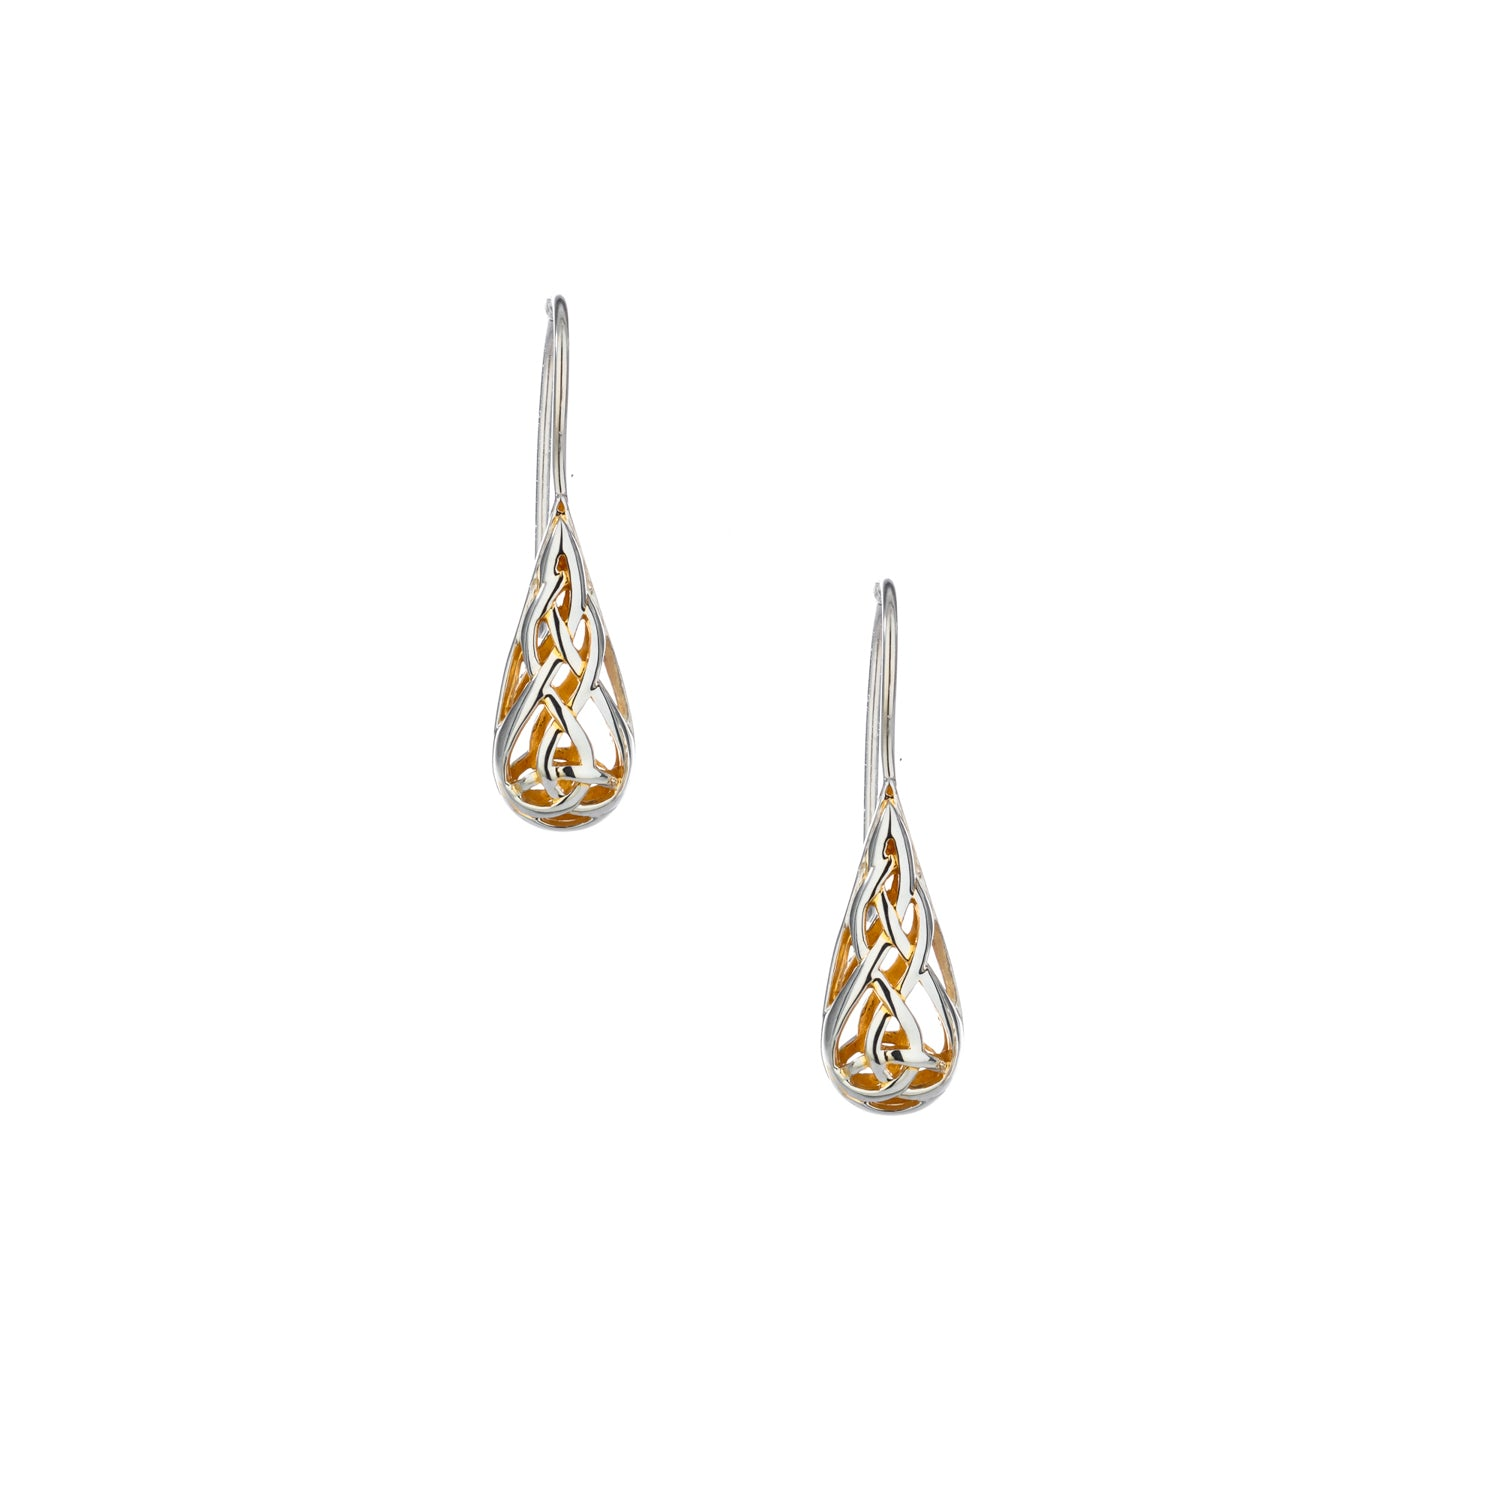 Earrings 22k Gilded Trinity Teardrop Hook Earrings from welch and company jewelers near syracuse ny